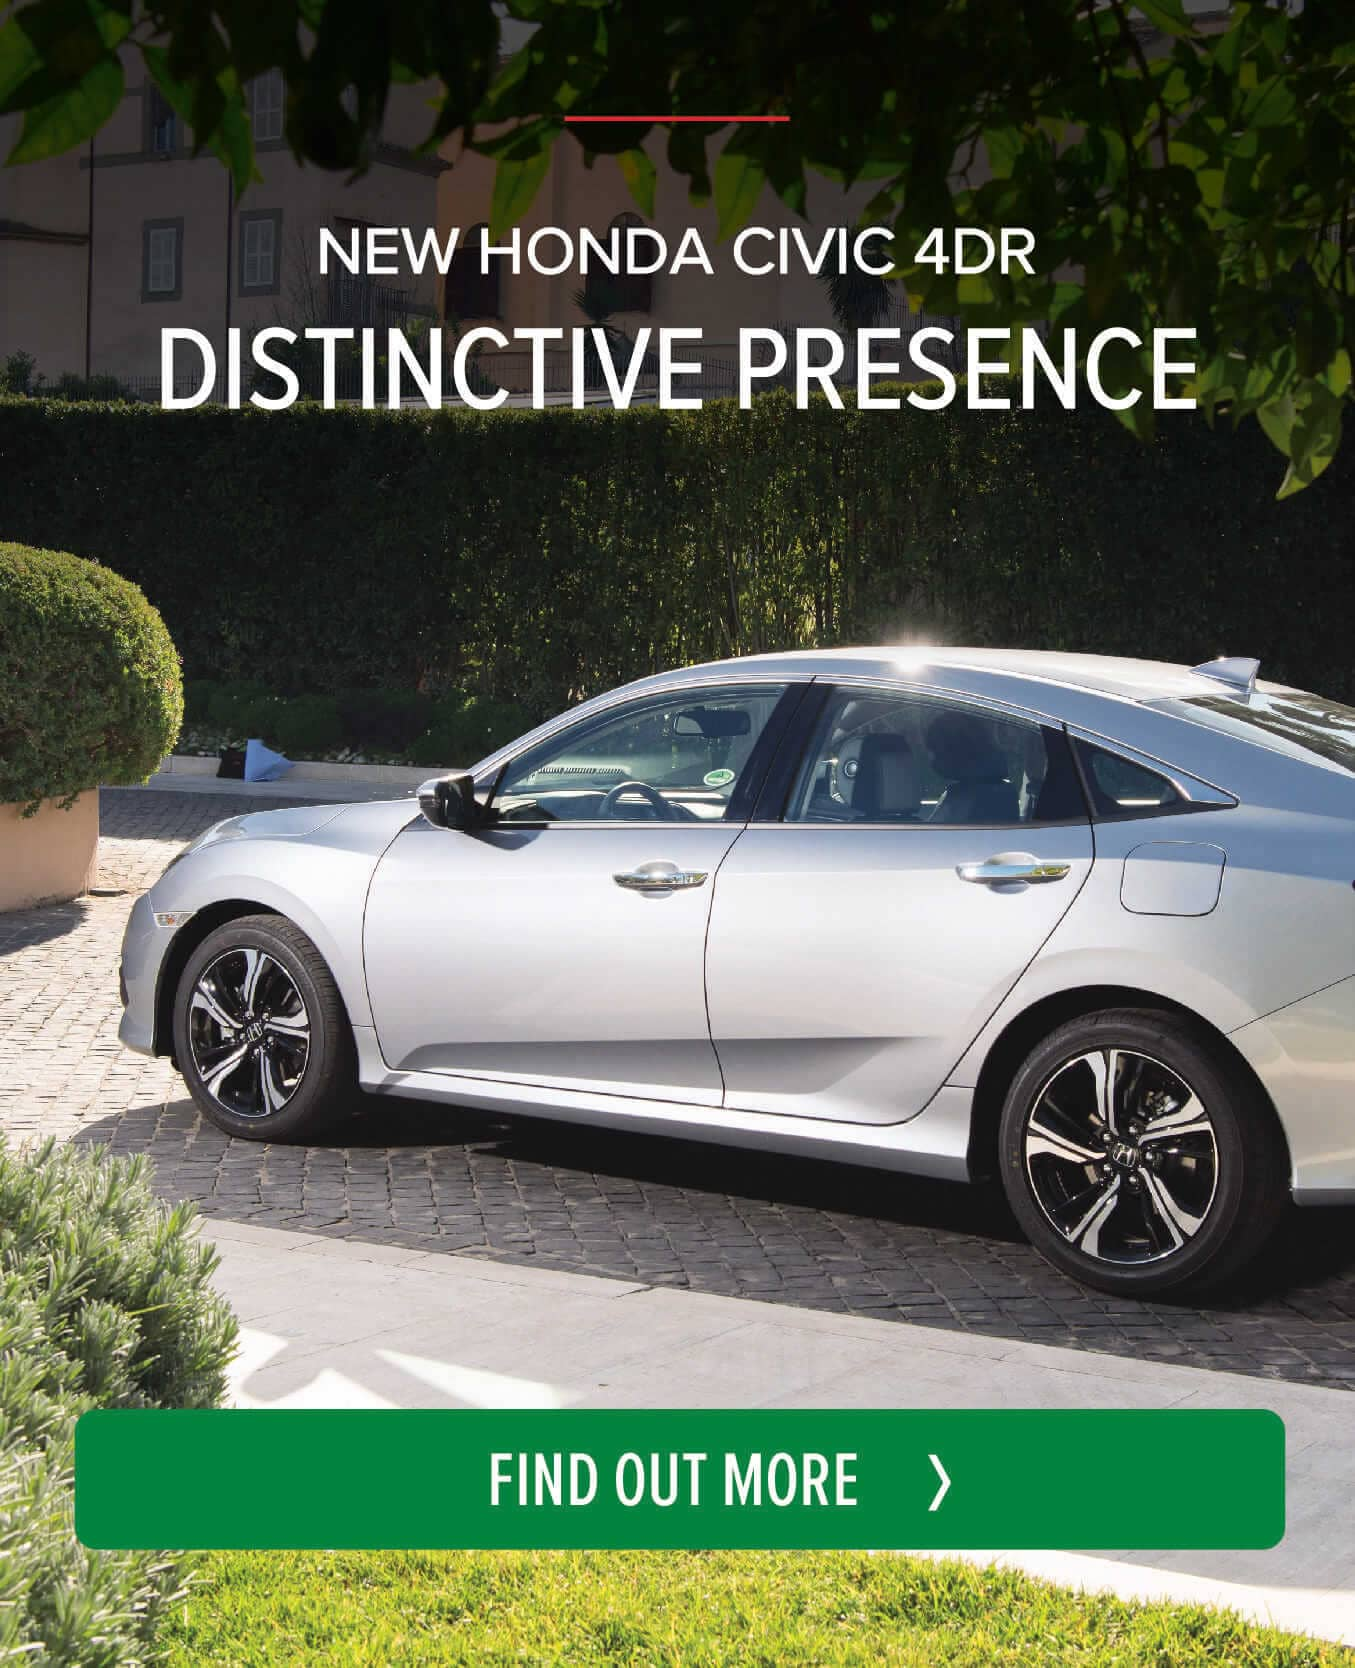 New Honda Civic 4dr BB